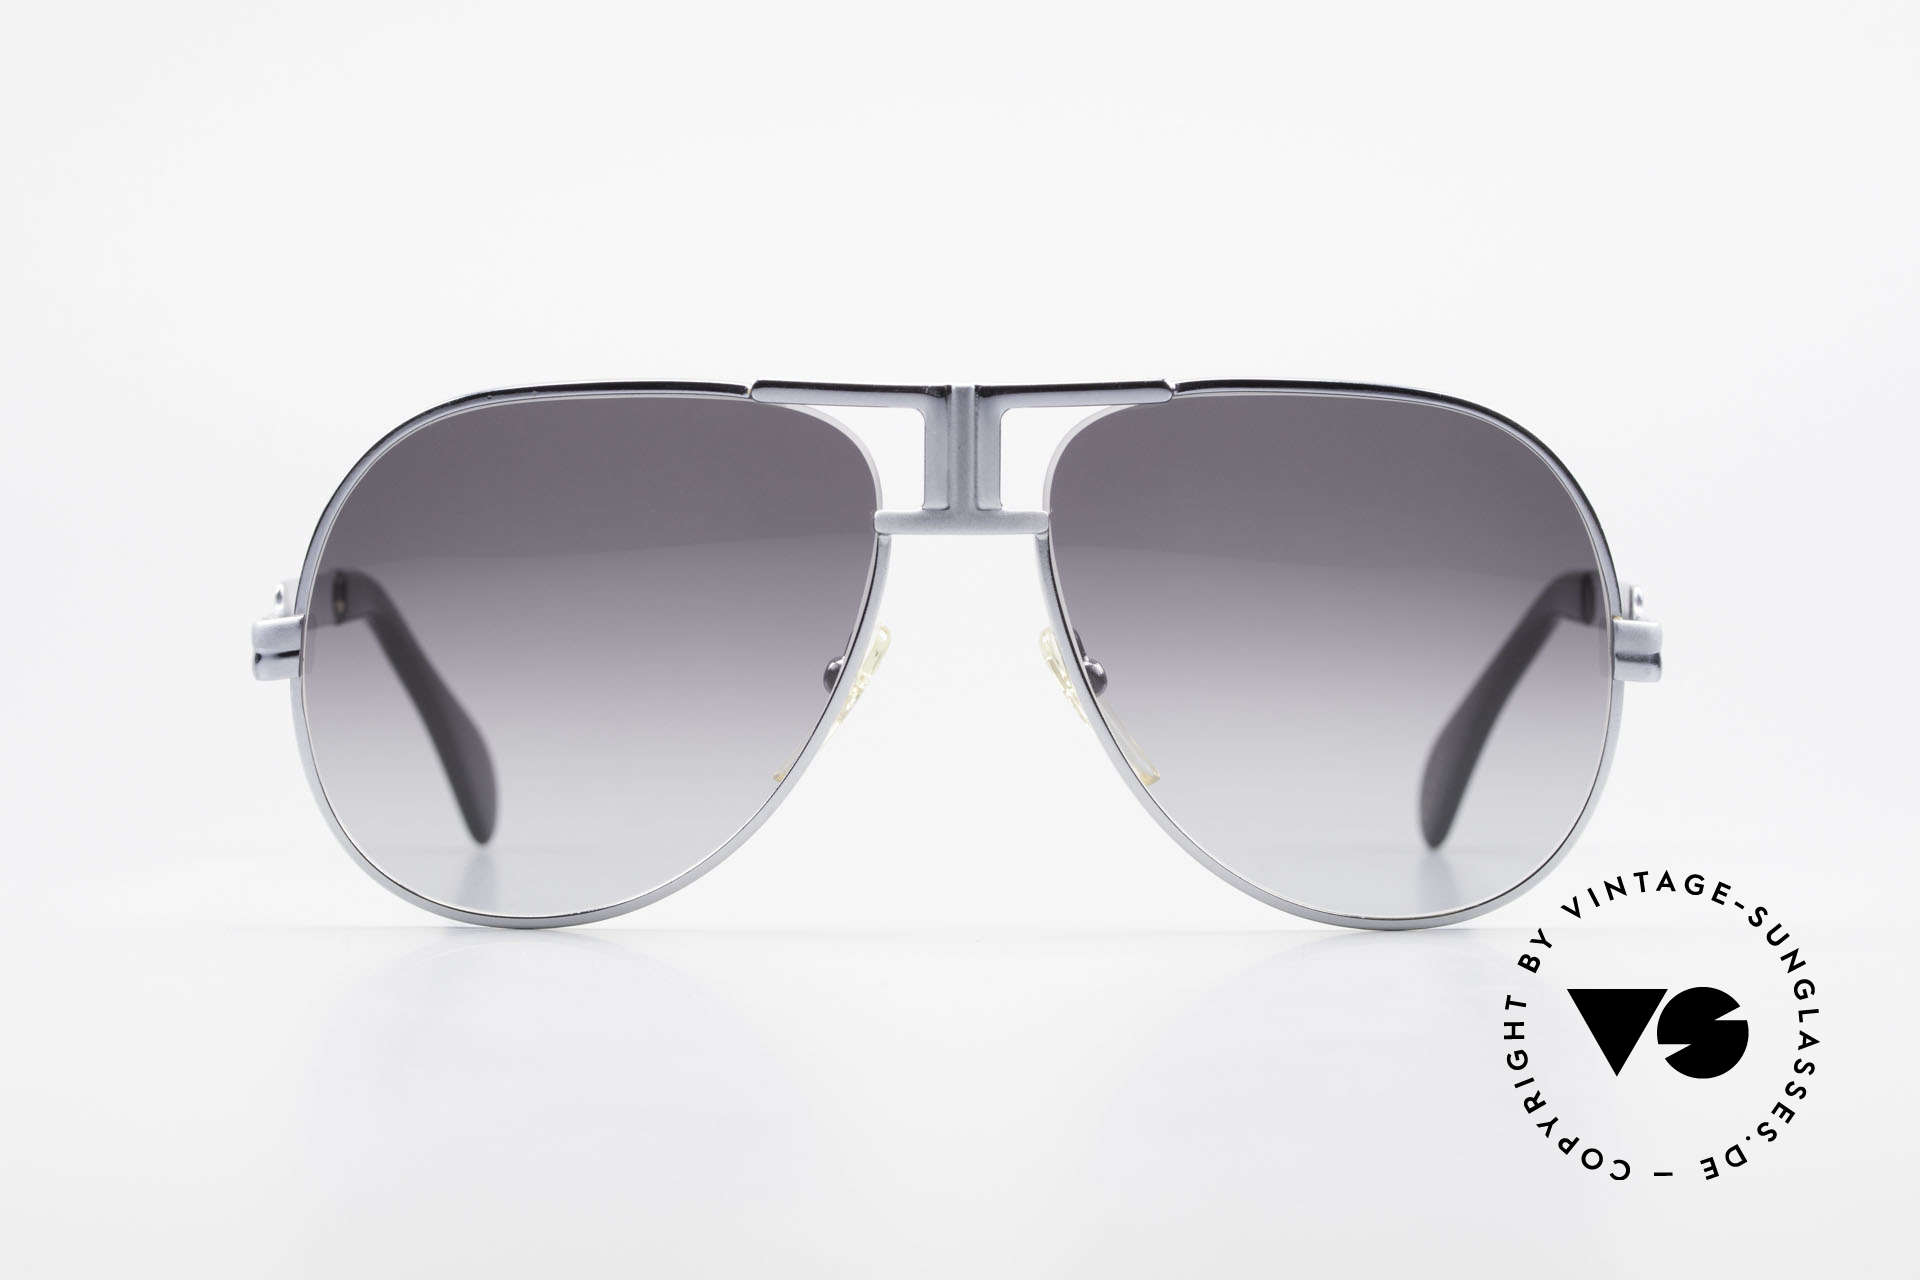 Cazal 702 Ultra Rare 70's Sunglasses, monolithic quality, built to last, made in Germany, Made for Men